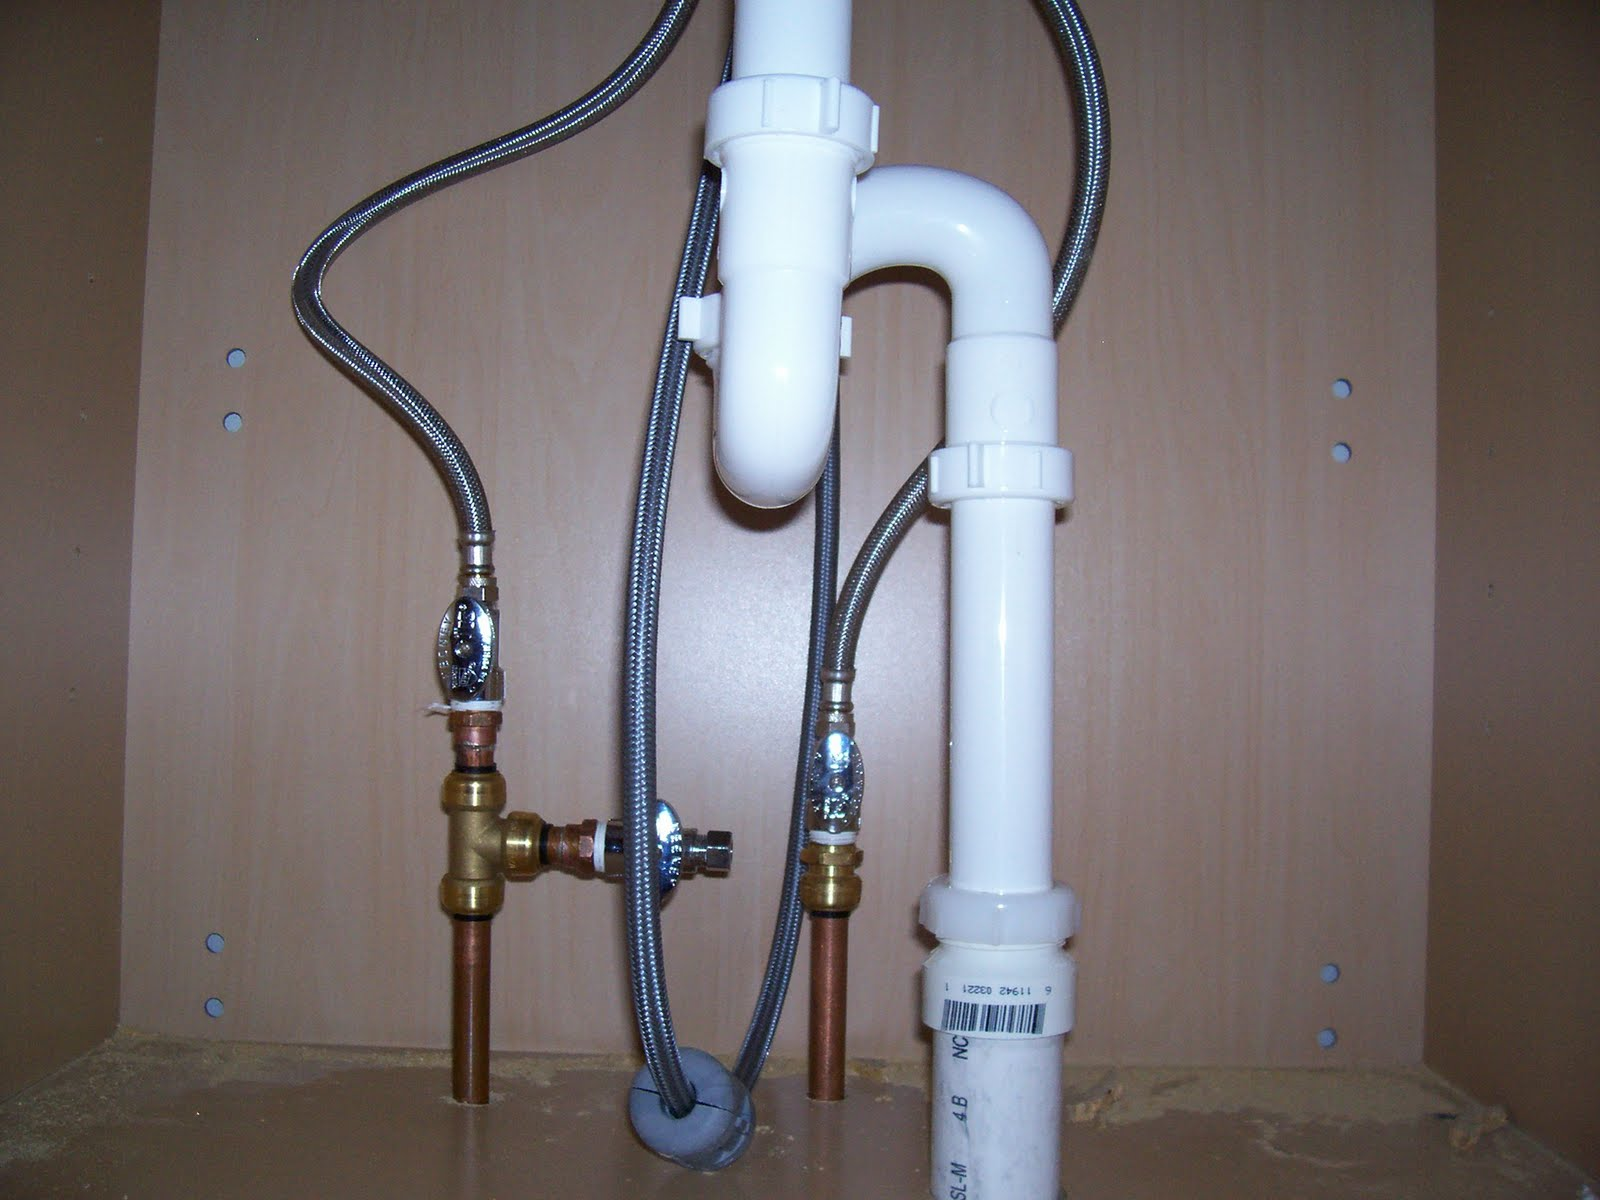 88caprice plumbing pipes and pops helps for Running copper water lines